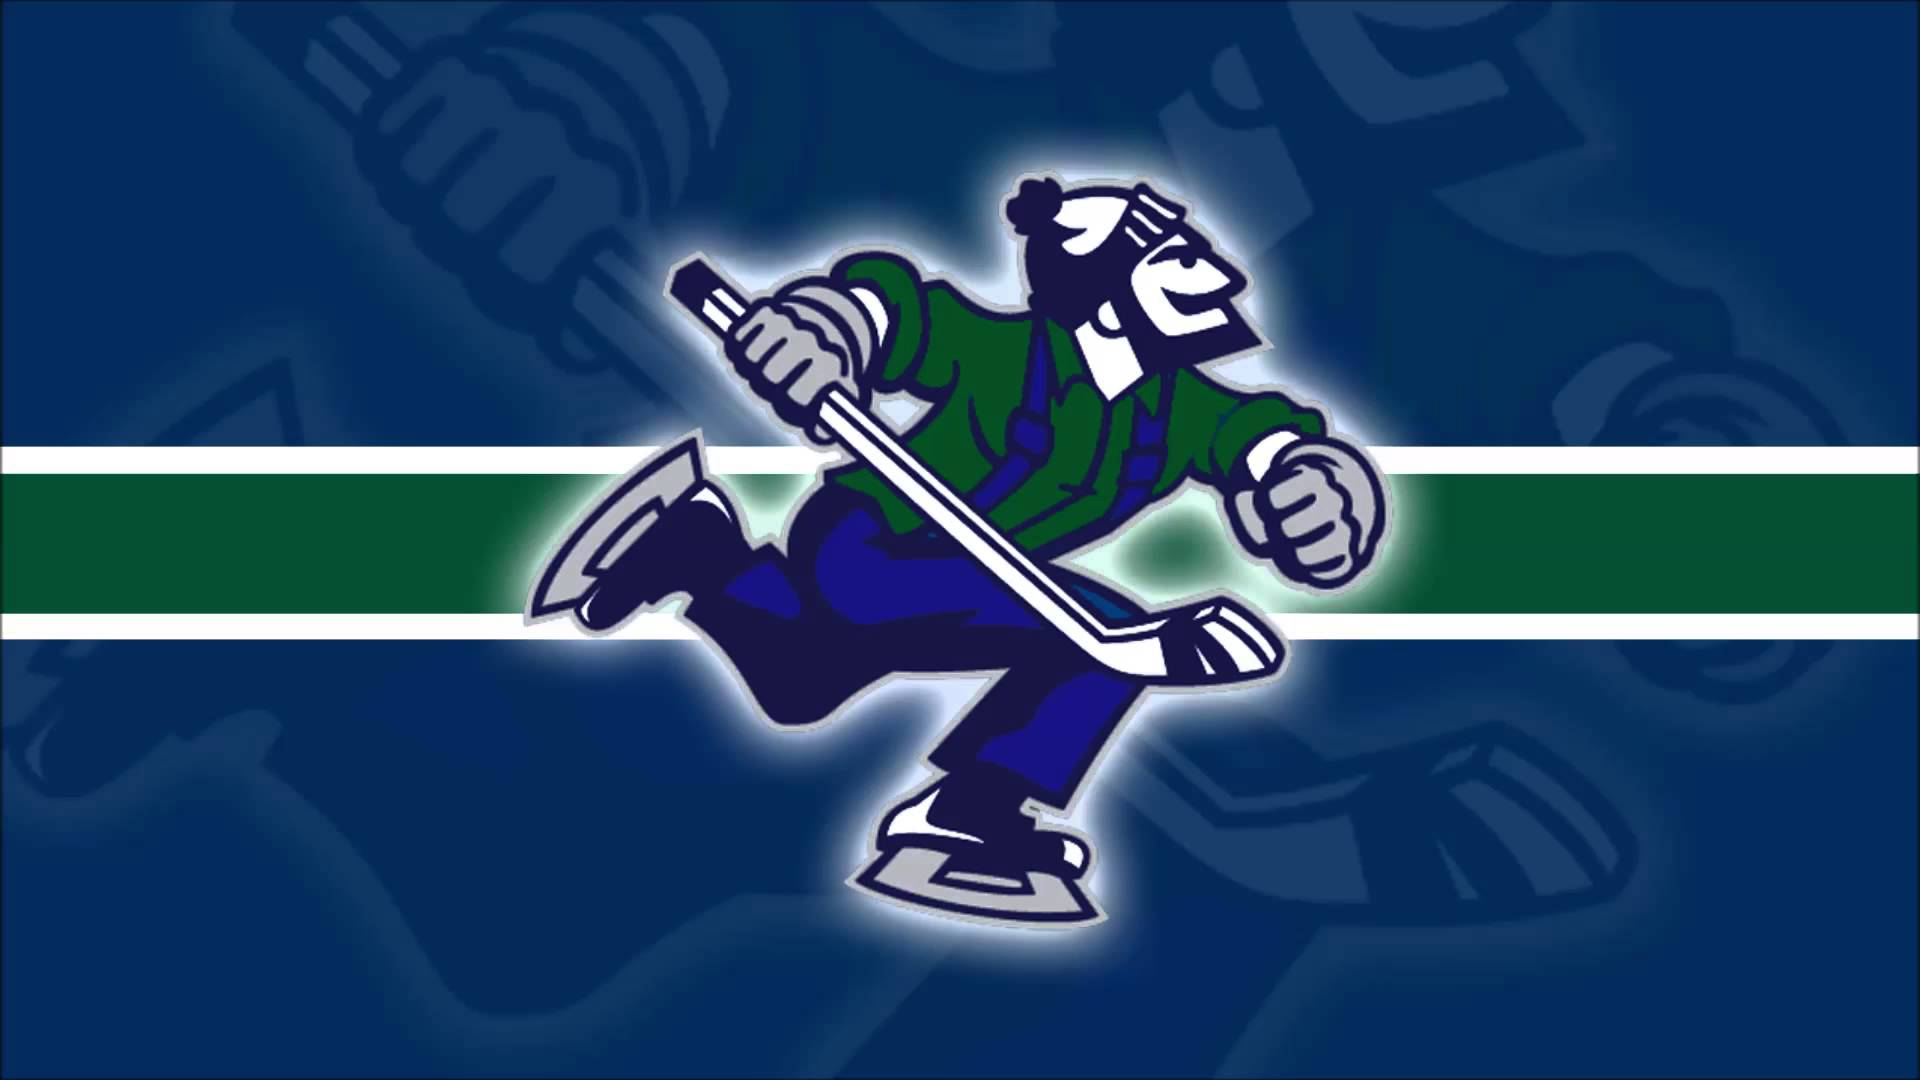 Canucks Desktop Background 1920x1080